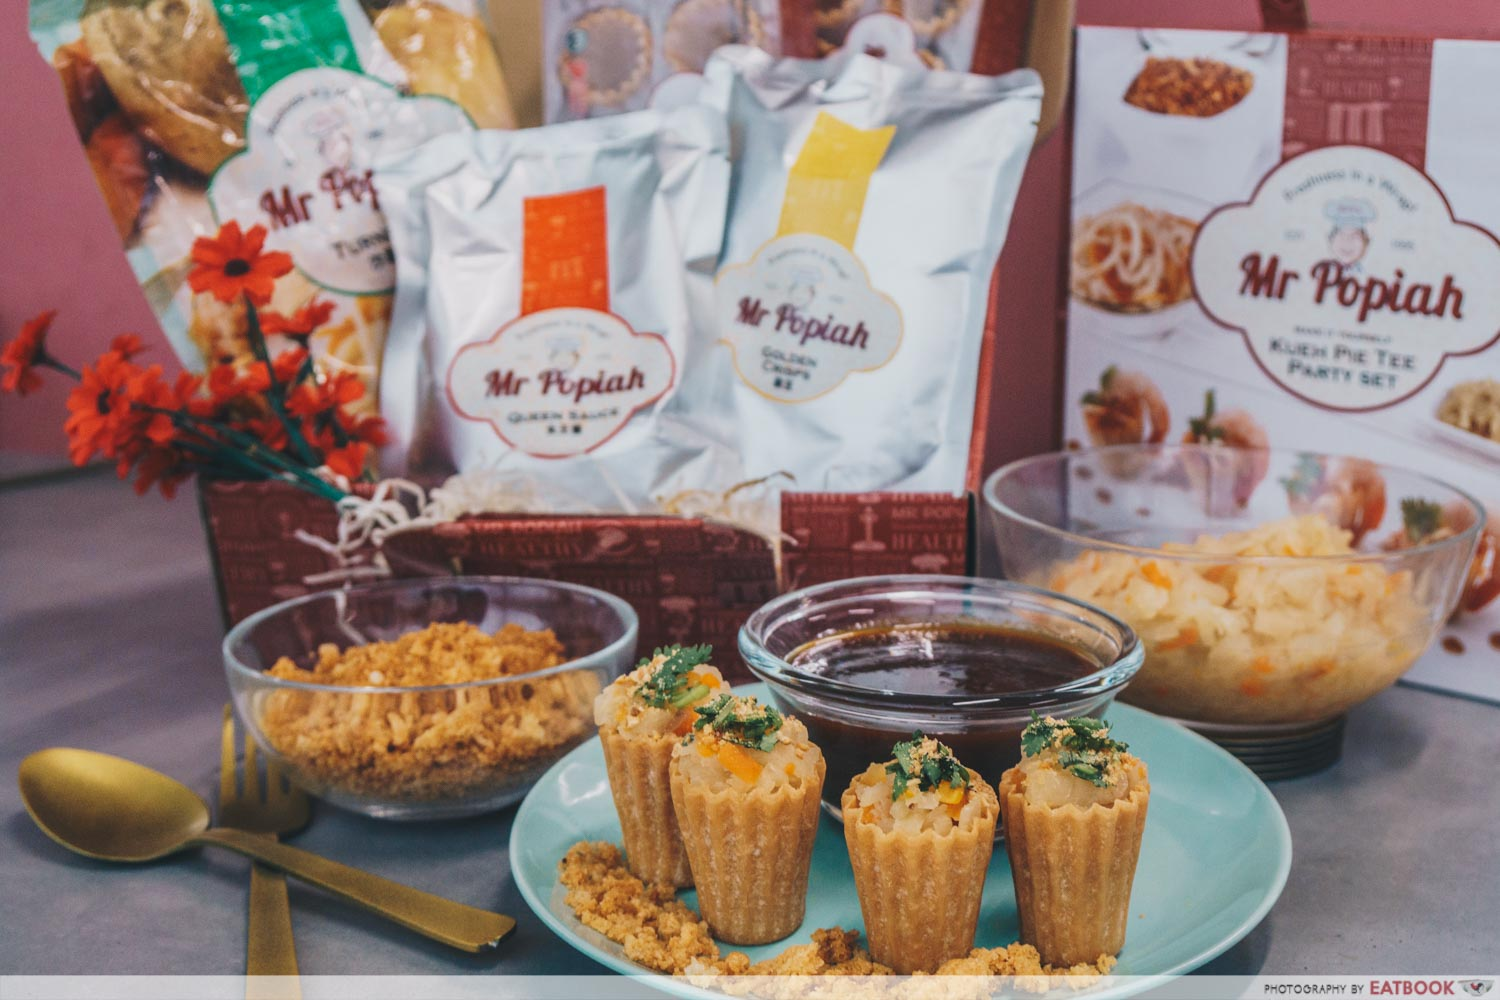 Mr Popiah - Kueh Pie Tee Set